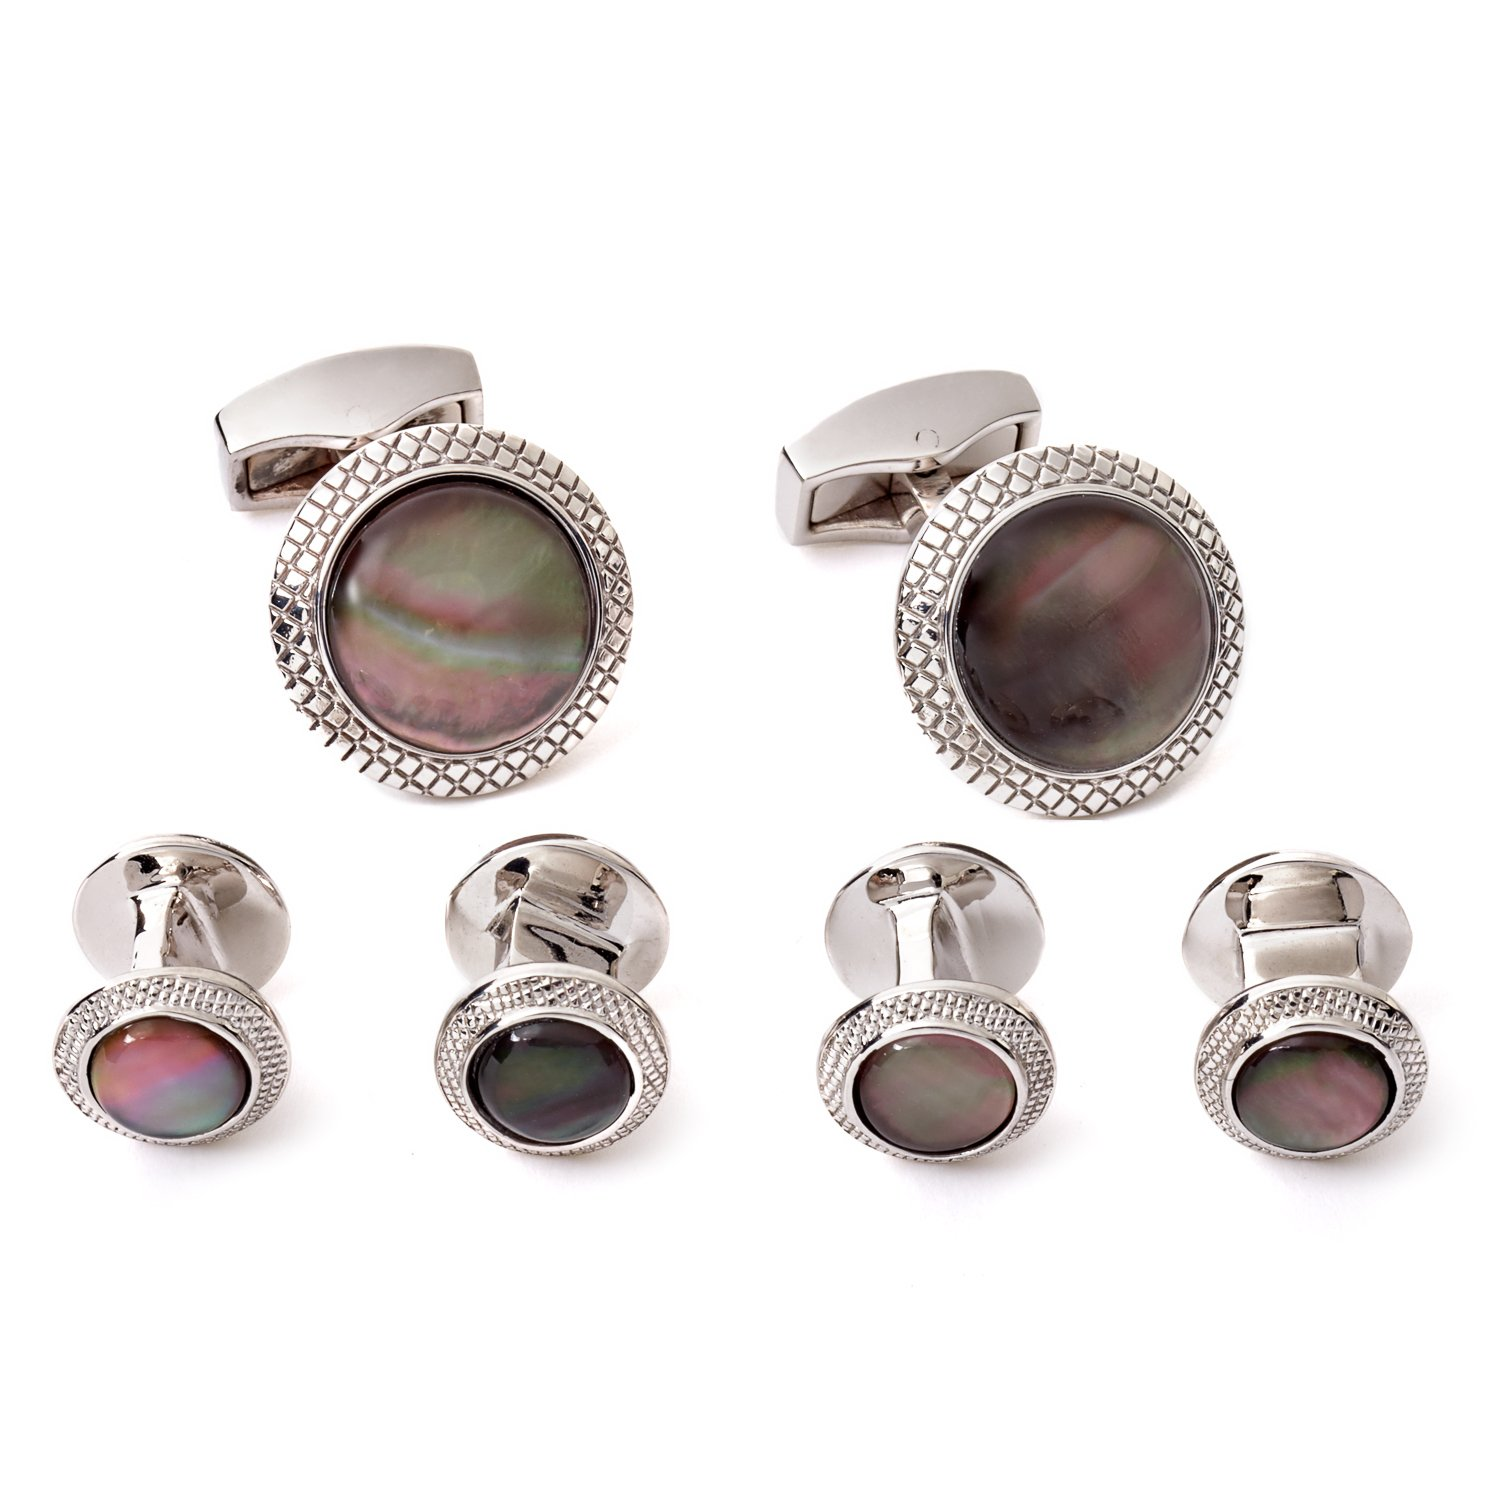 Tateossian Black Mother of Pearl Shirt Studs Cufflink Set with Rhodium Silver Case CL0233